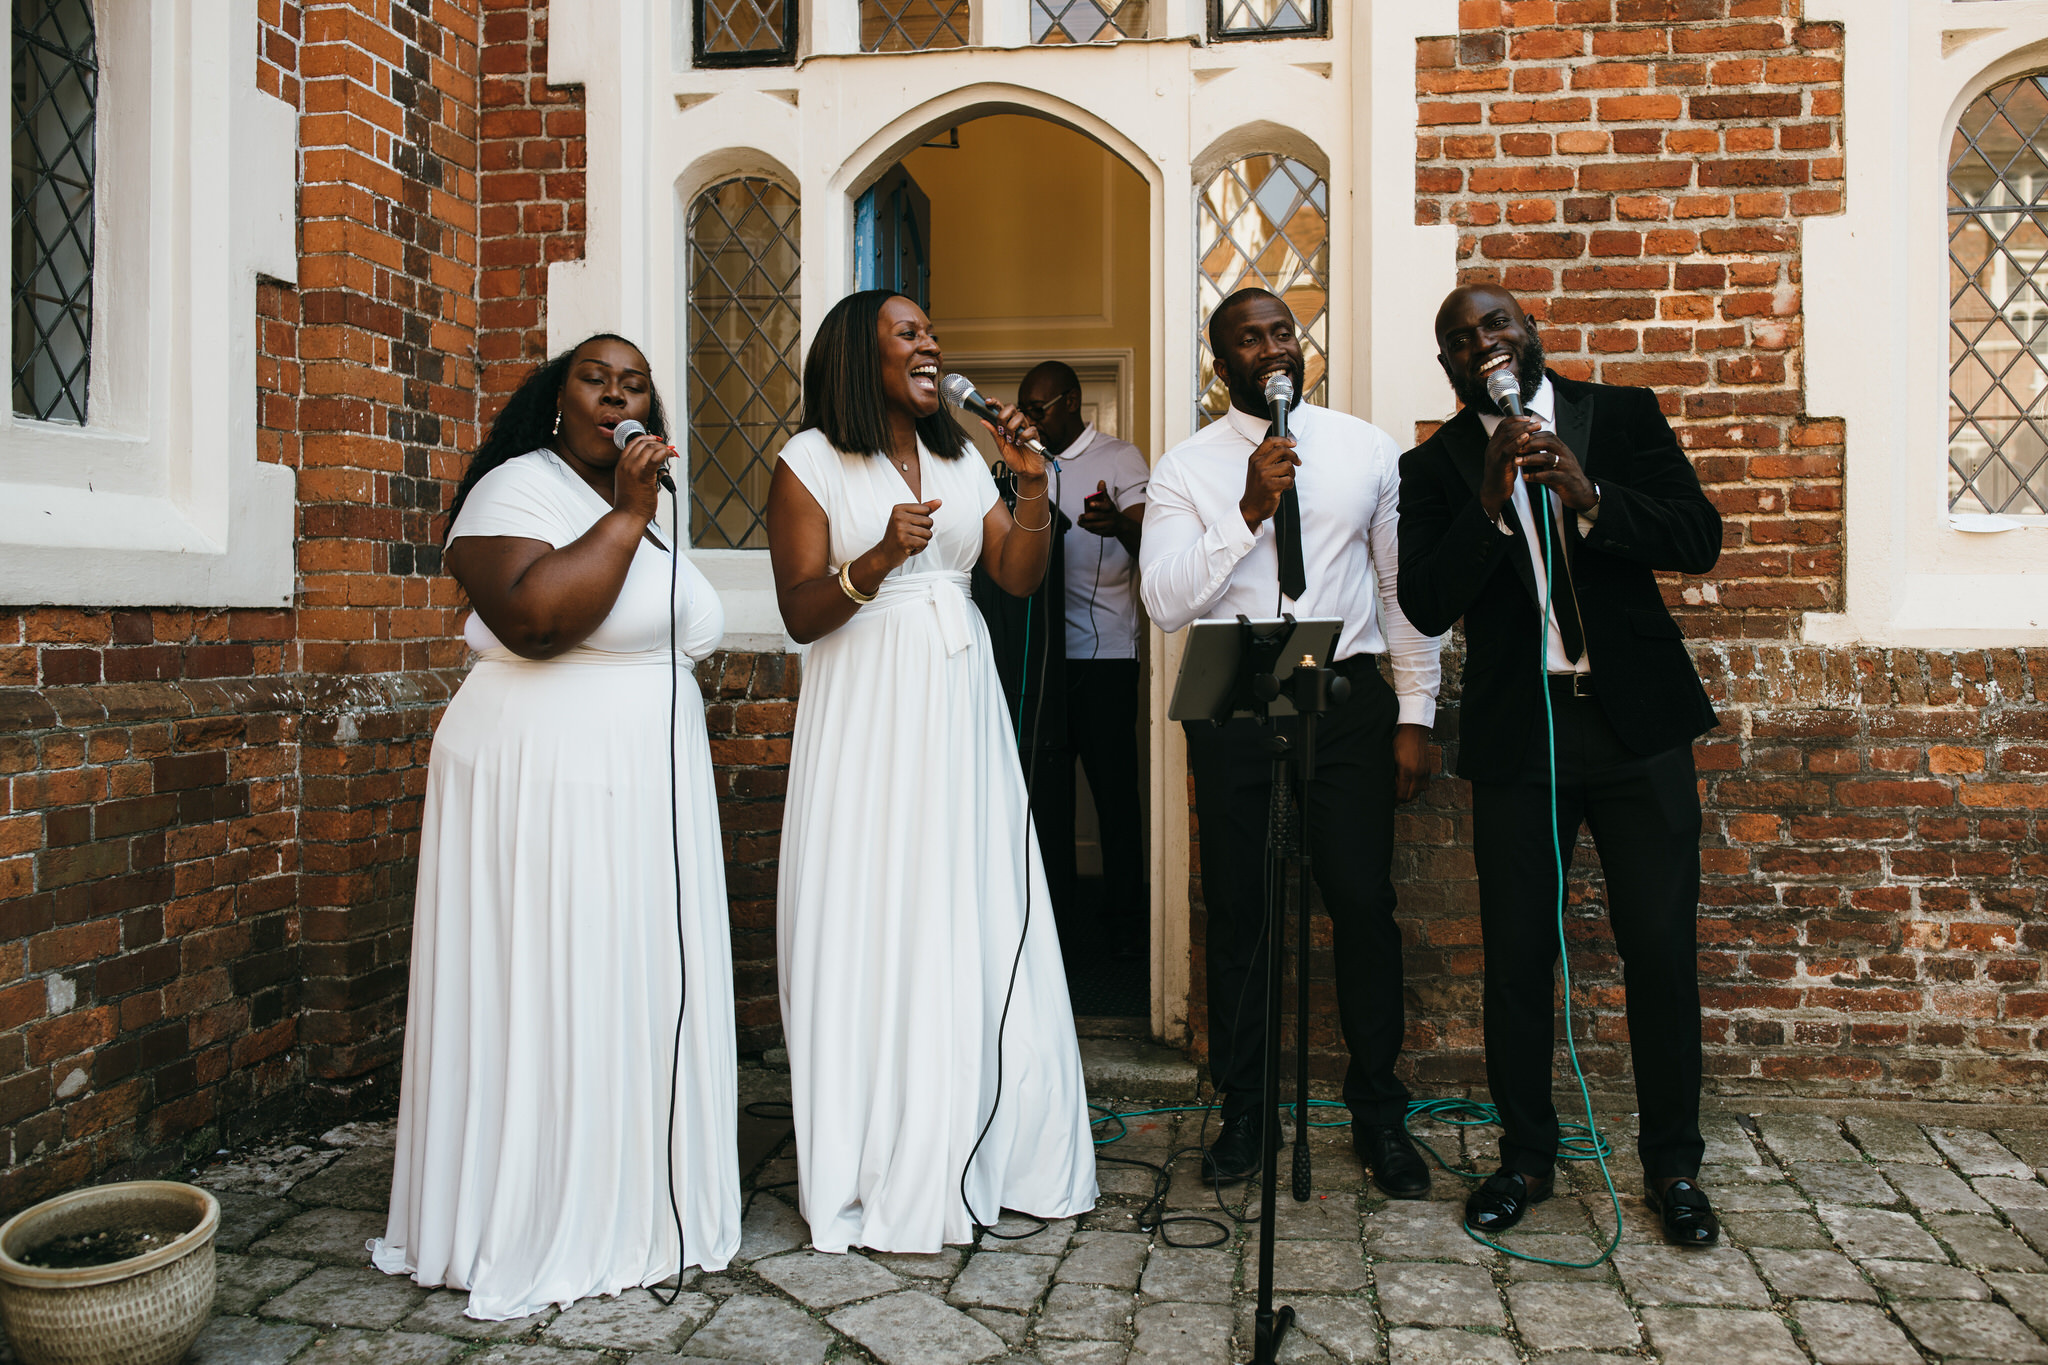 Gosfield hall and big gospel choir singers